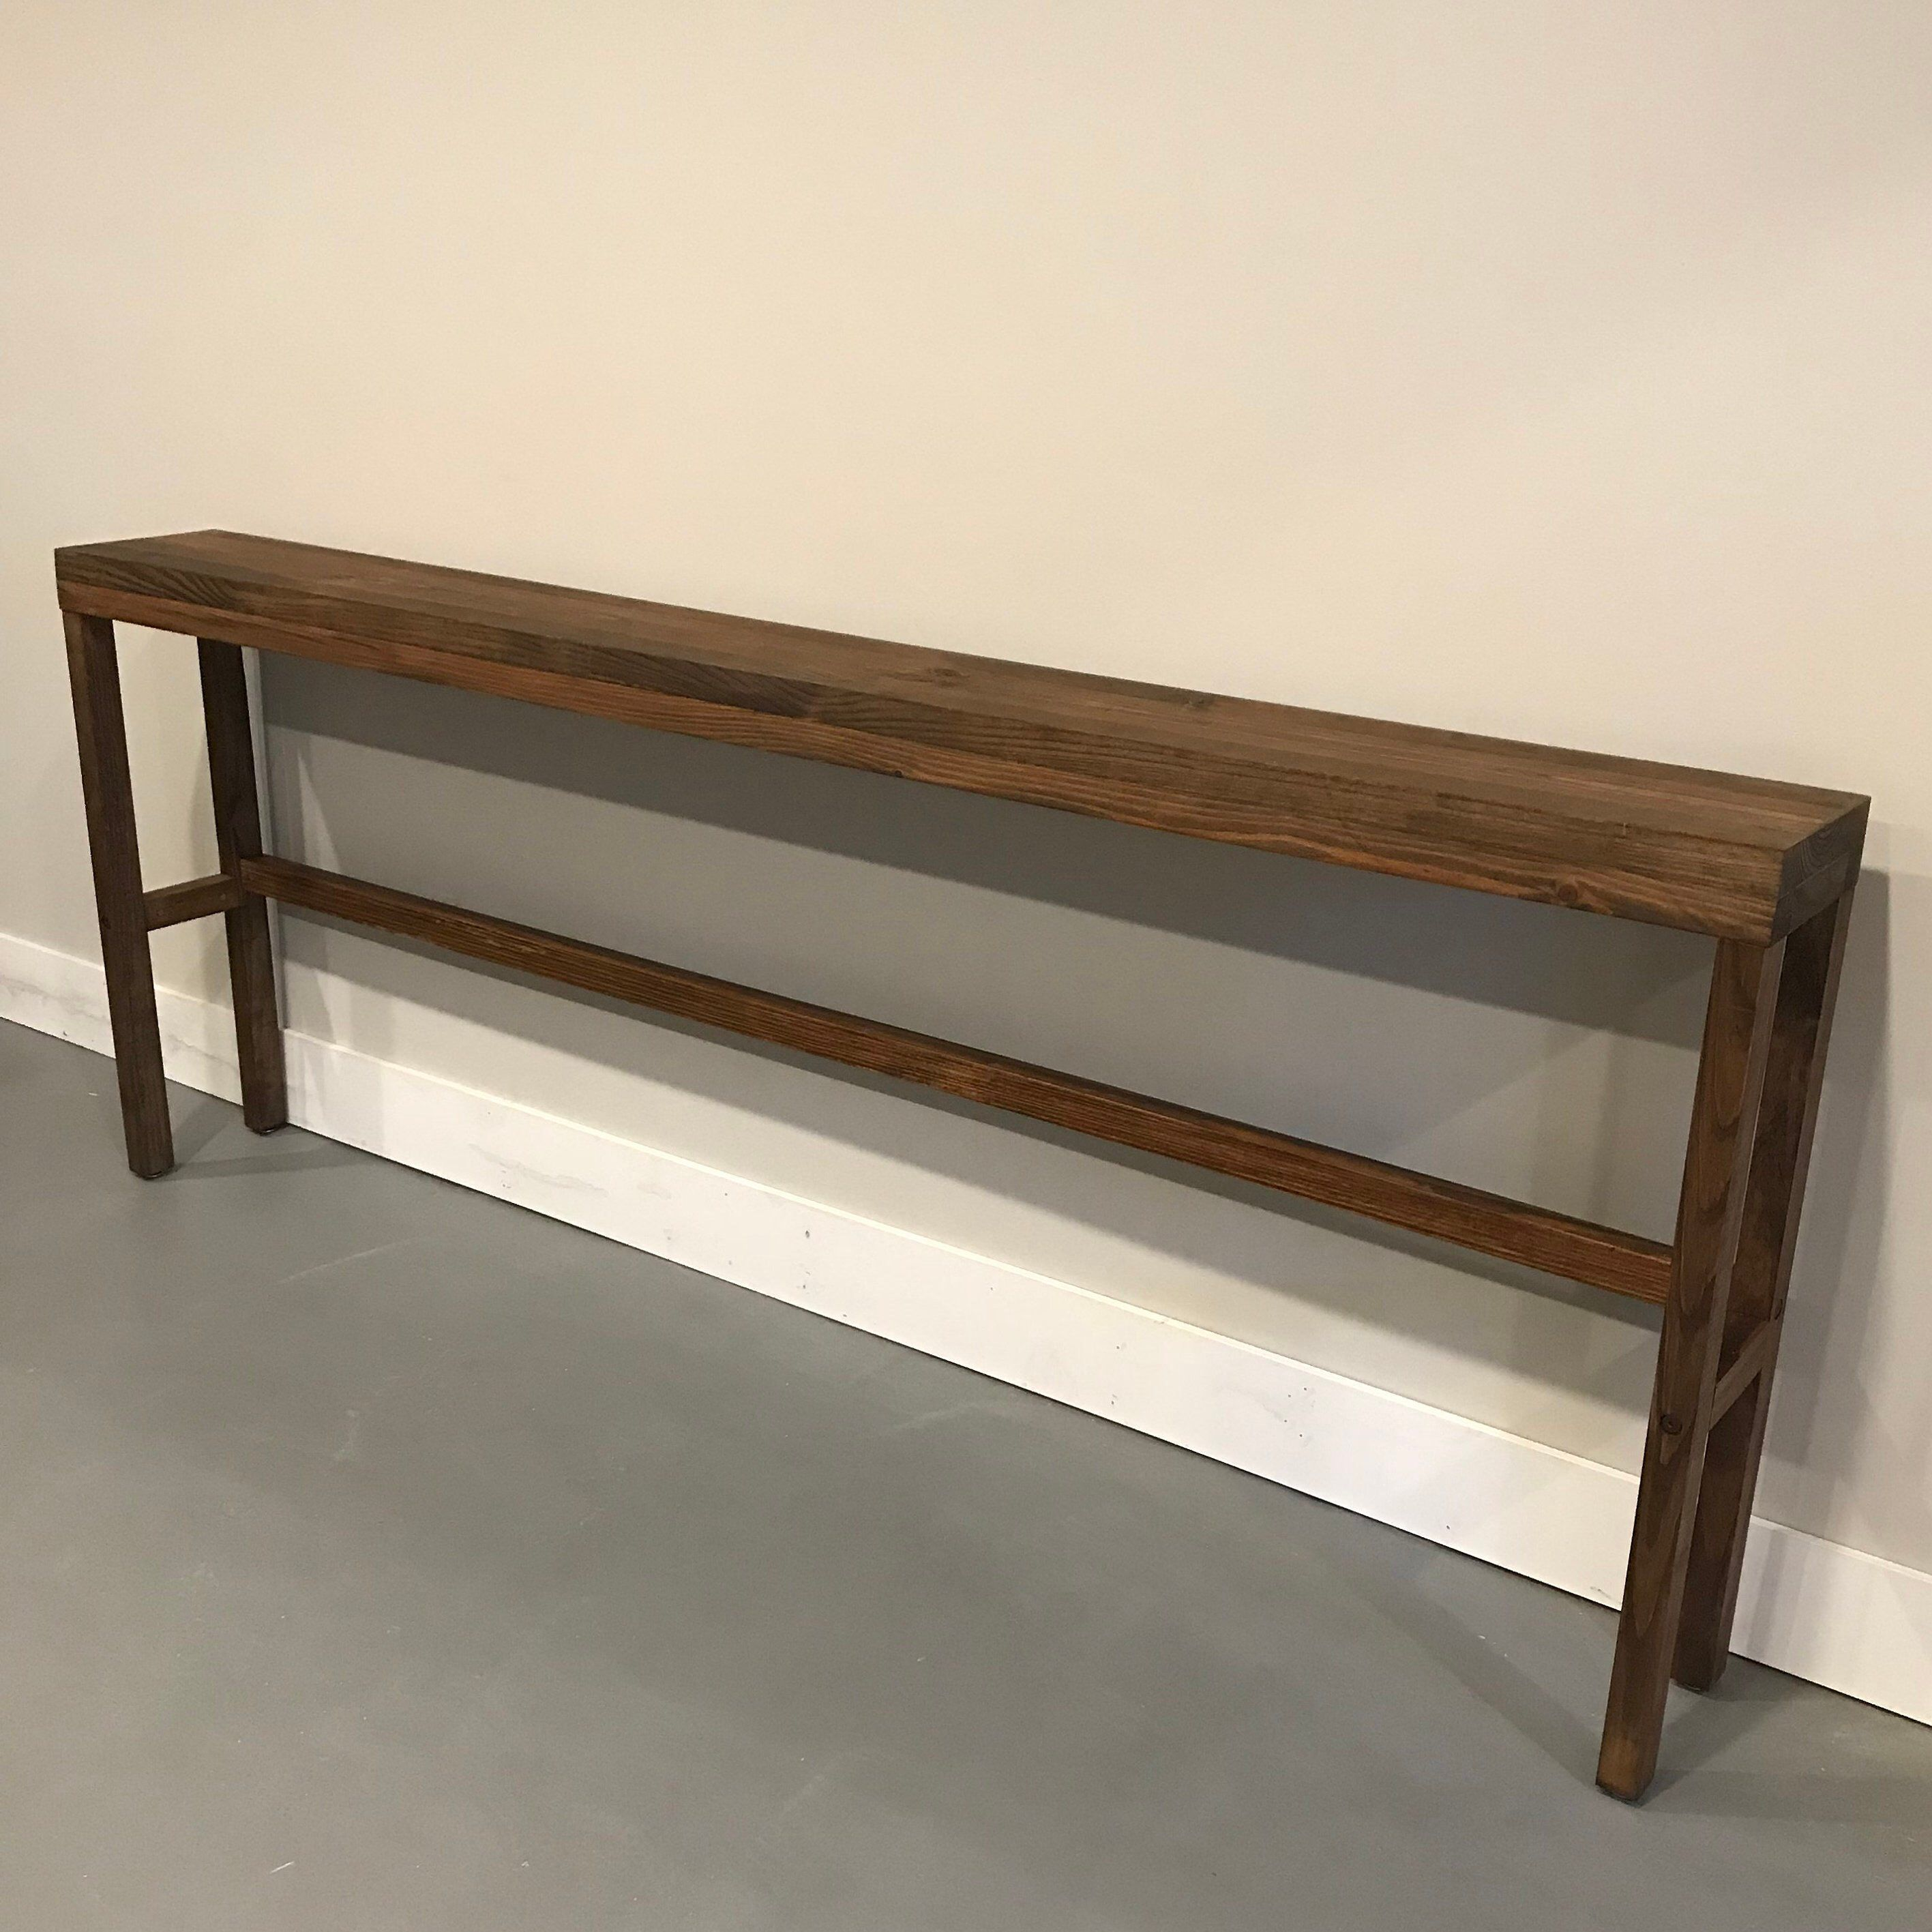 Long Console Table Narrow Console Table Skinny Console Table Sofa Table Behind Sofa Table Behind Table Behind Couch Behind Sofa Table Diy Sofa Table